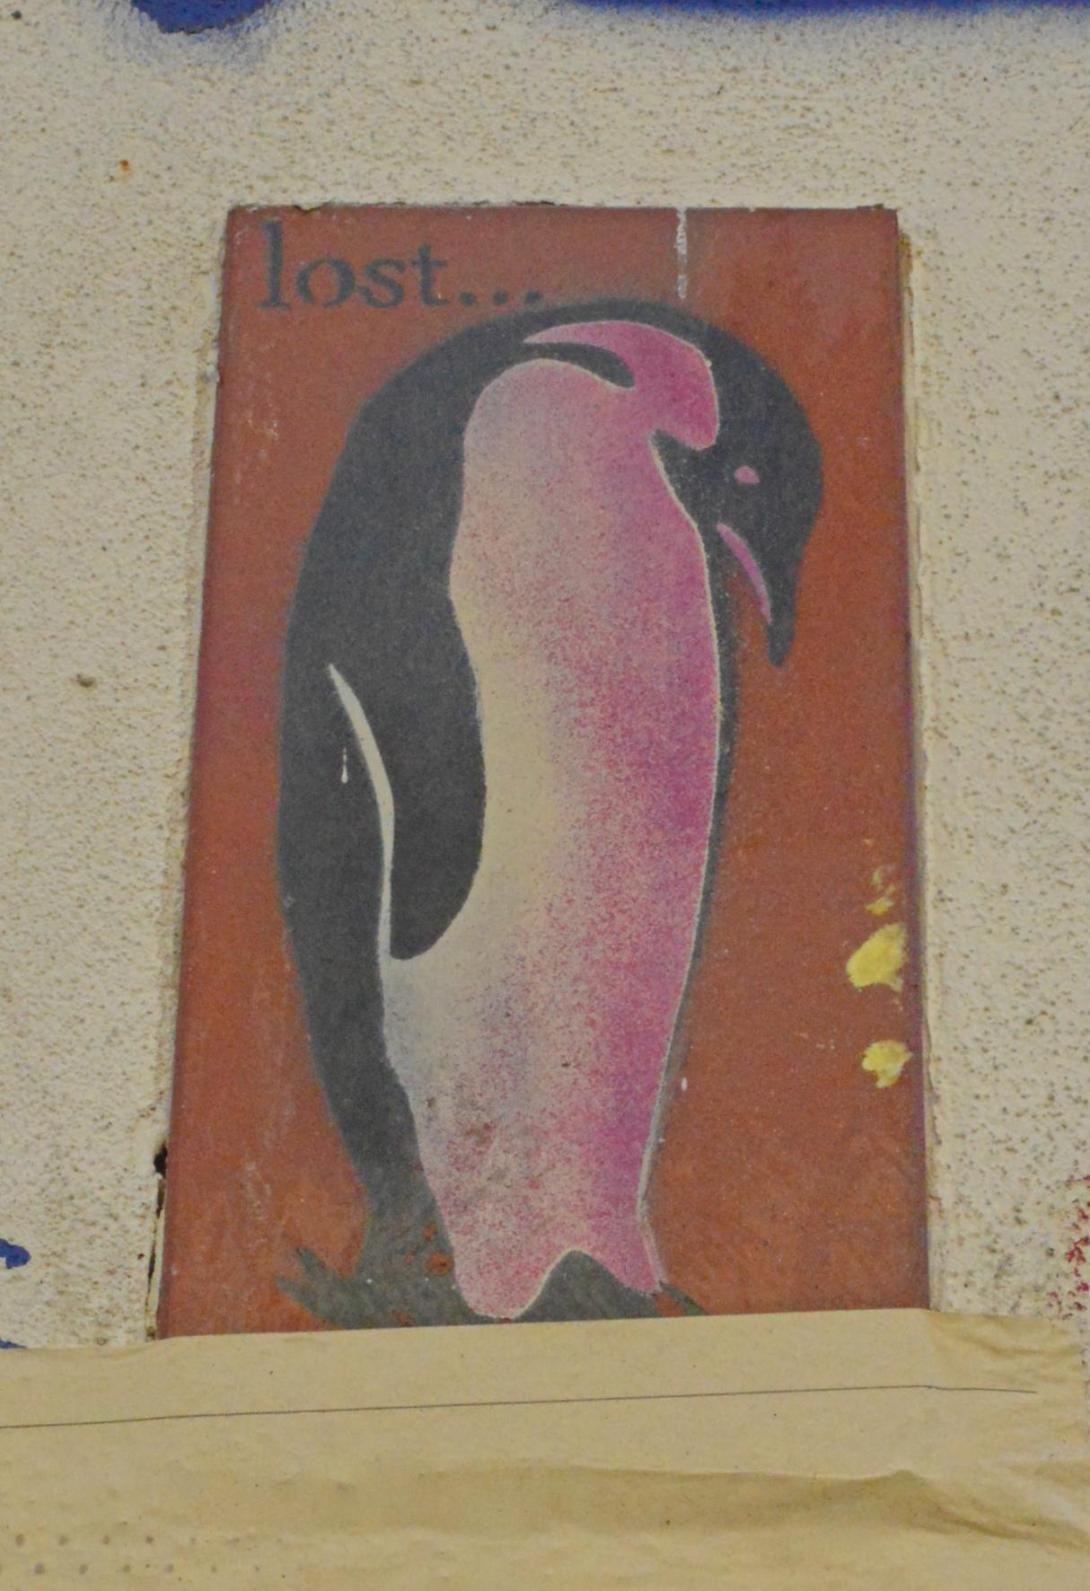 #streetart #berlin Kreuzberg Penguin lost be kitschig blog